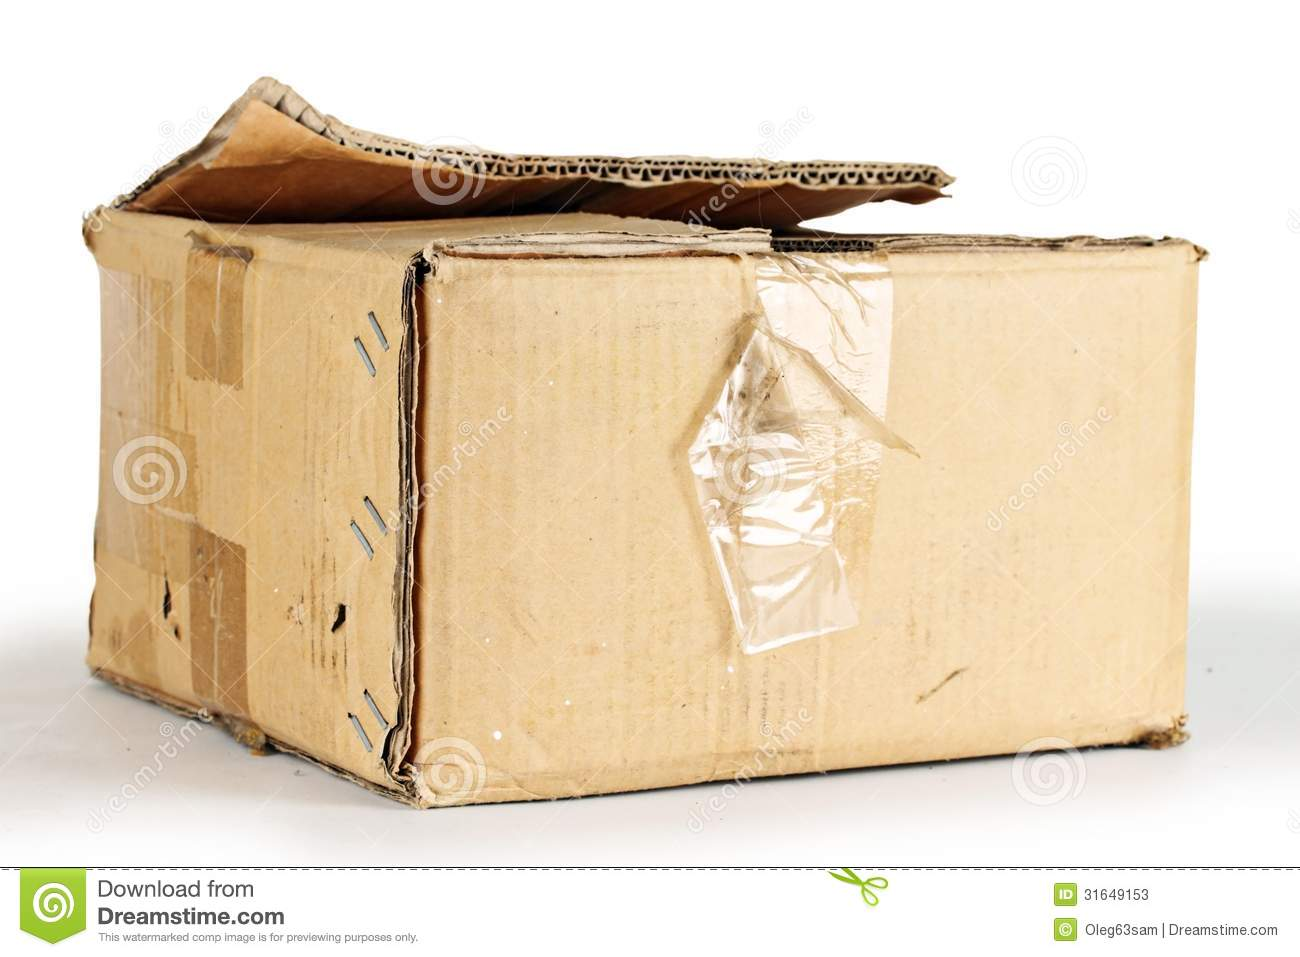 Cardboard box stock image image of open object for What to do with old mailbox